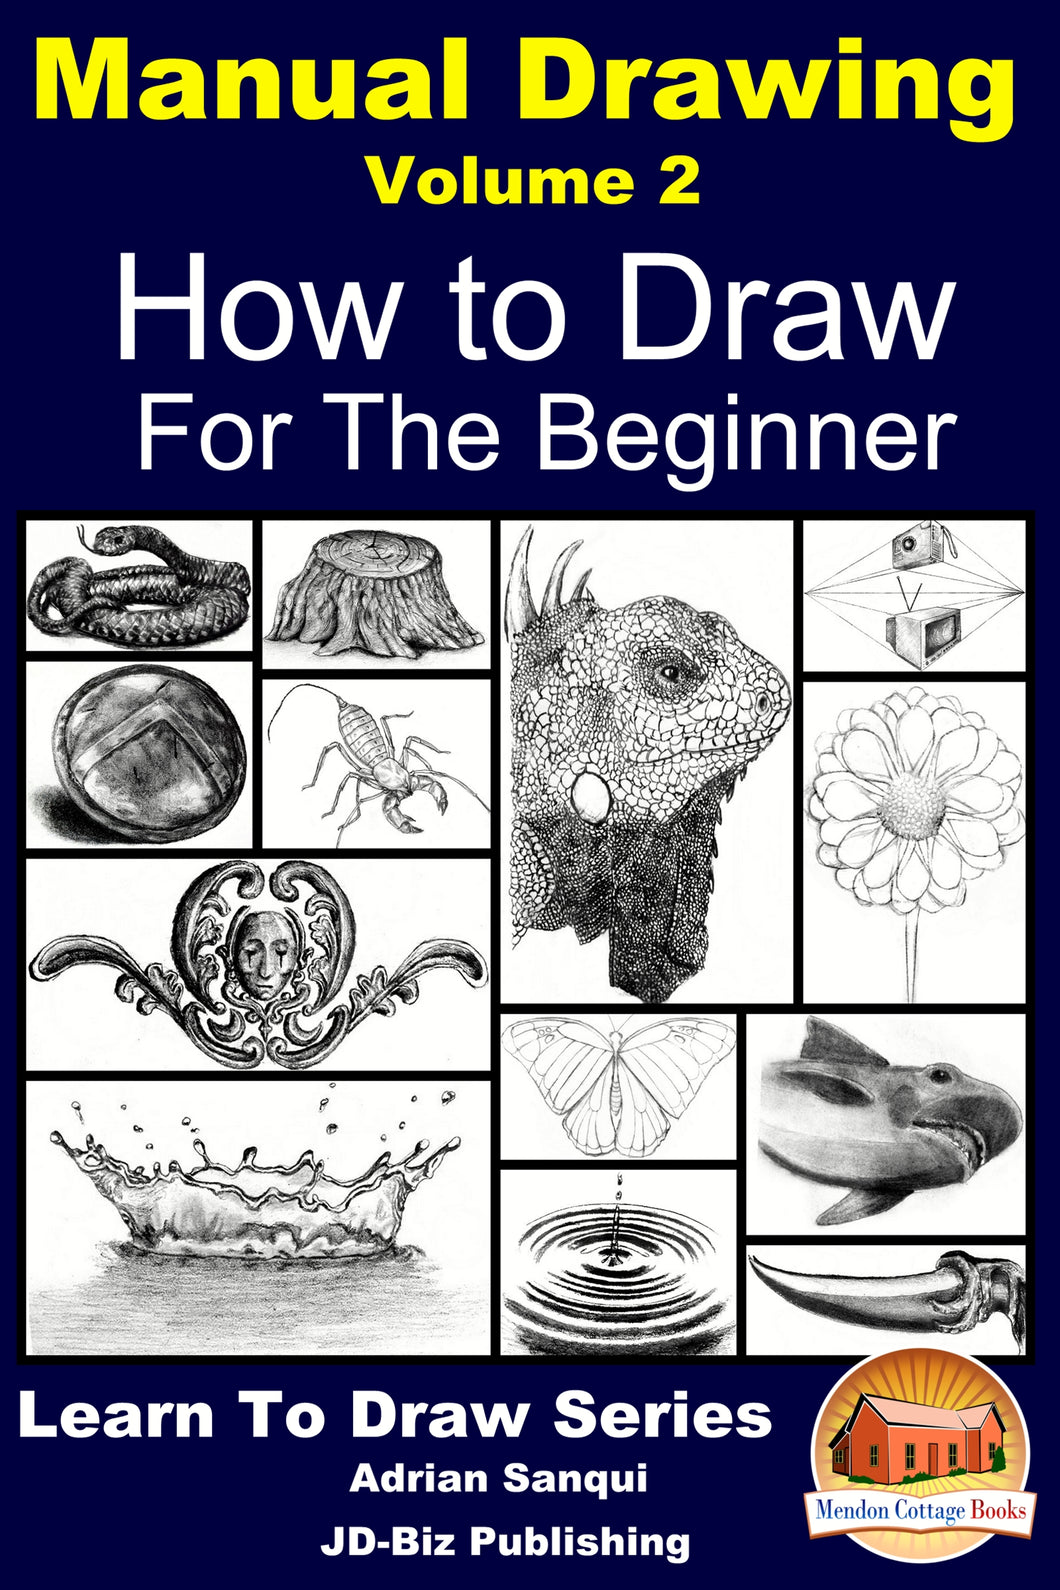 Manual Drawing Volume 2 For the Beginner